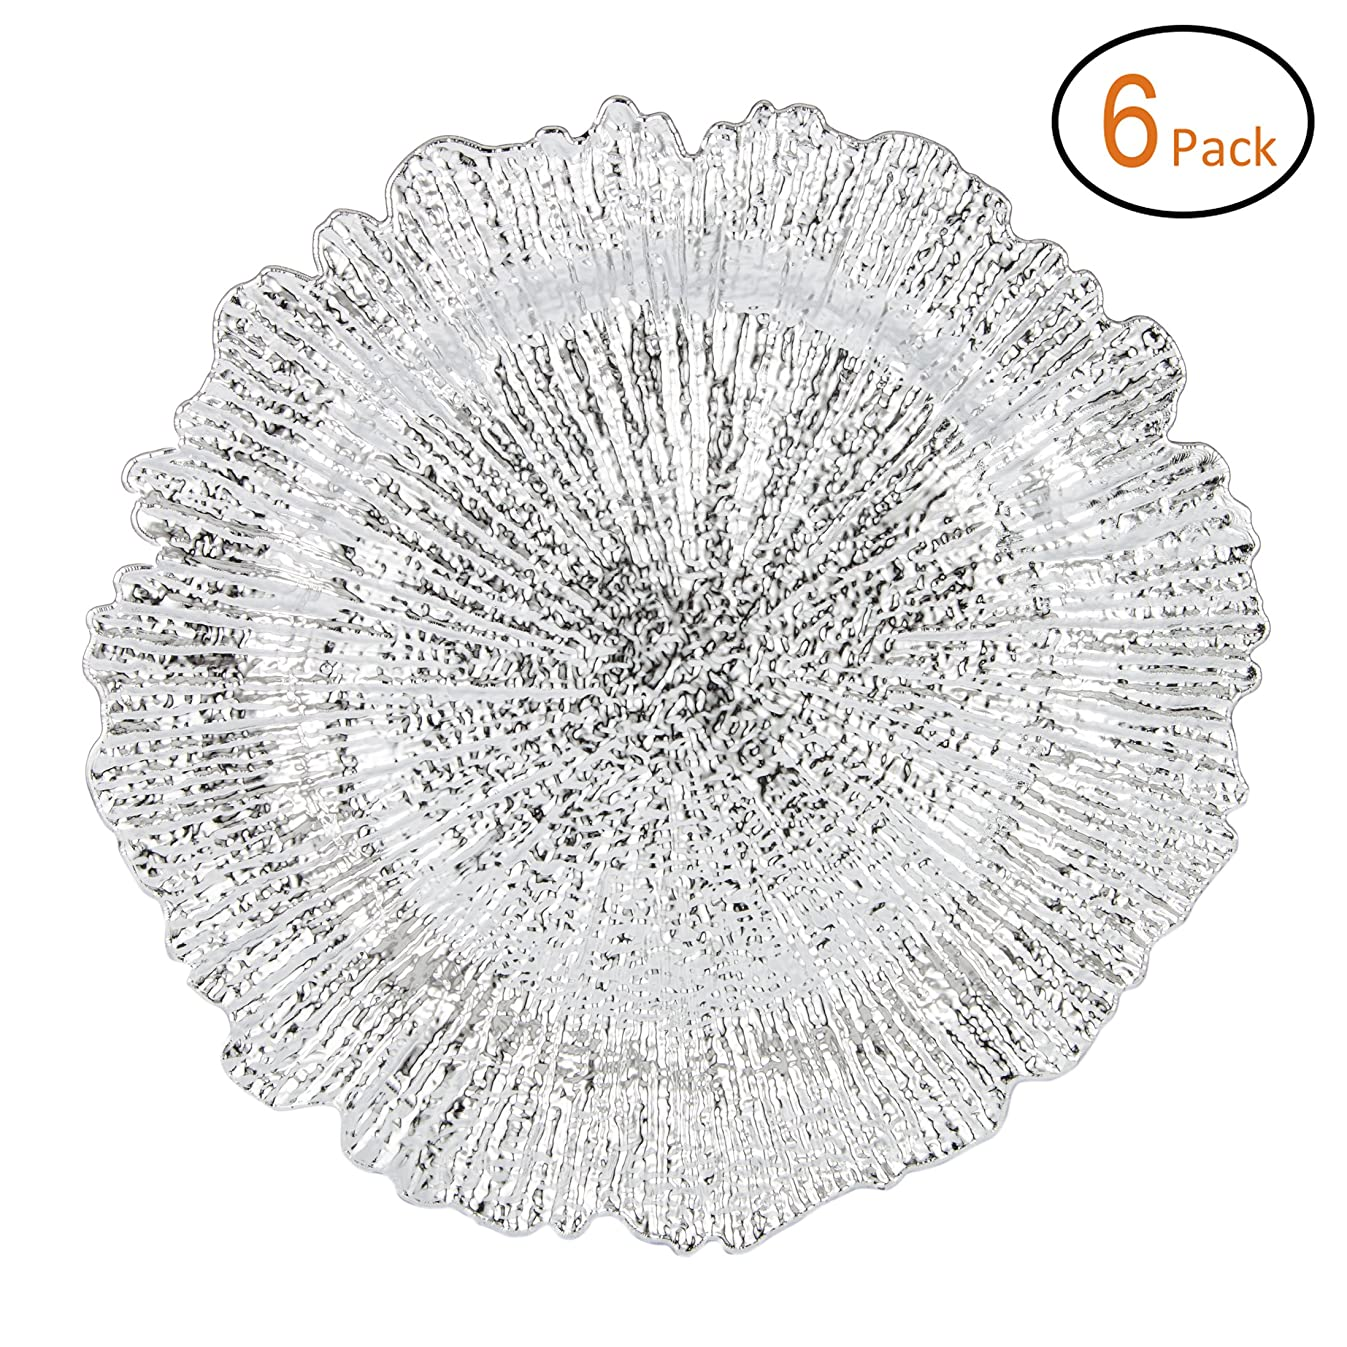 Fantastic:)? Round 13 Inch Plastic Charger Plates with Eletroplating Finish (6, Reef Silver)